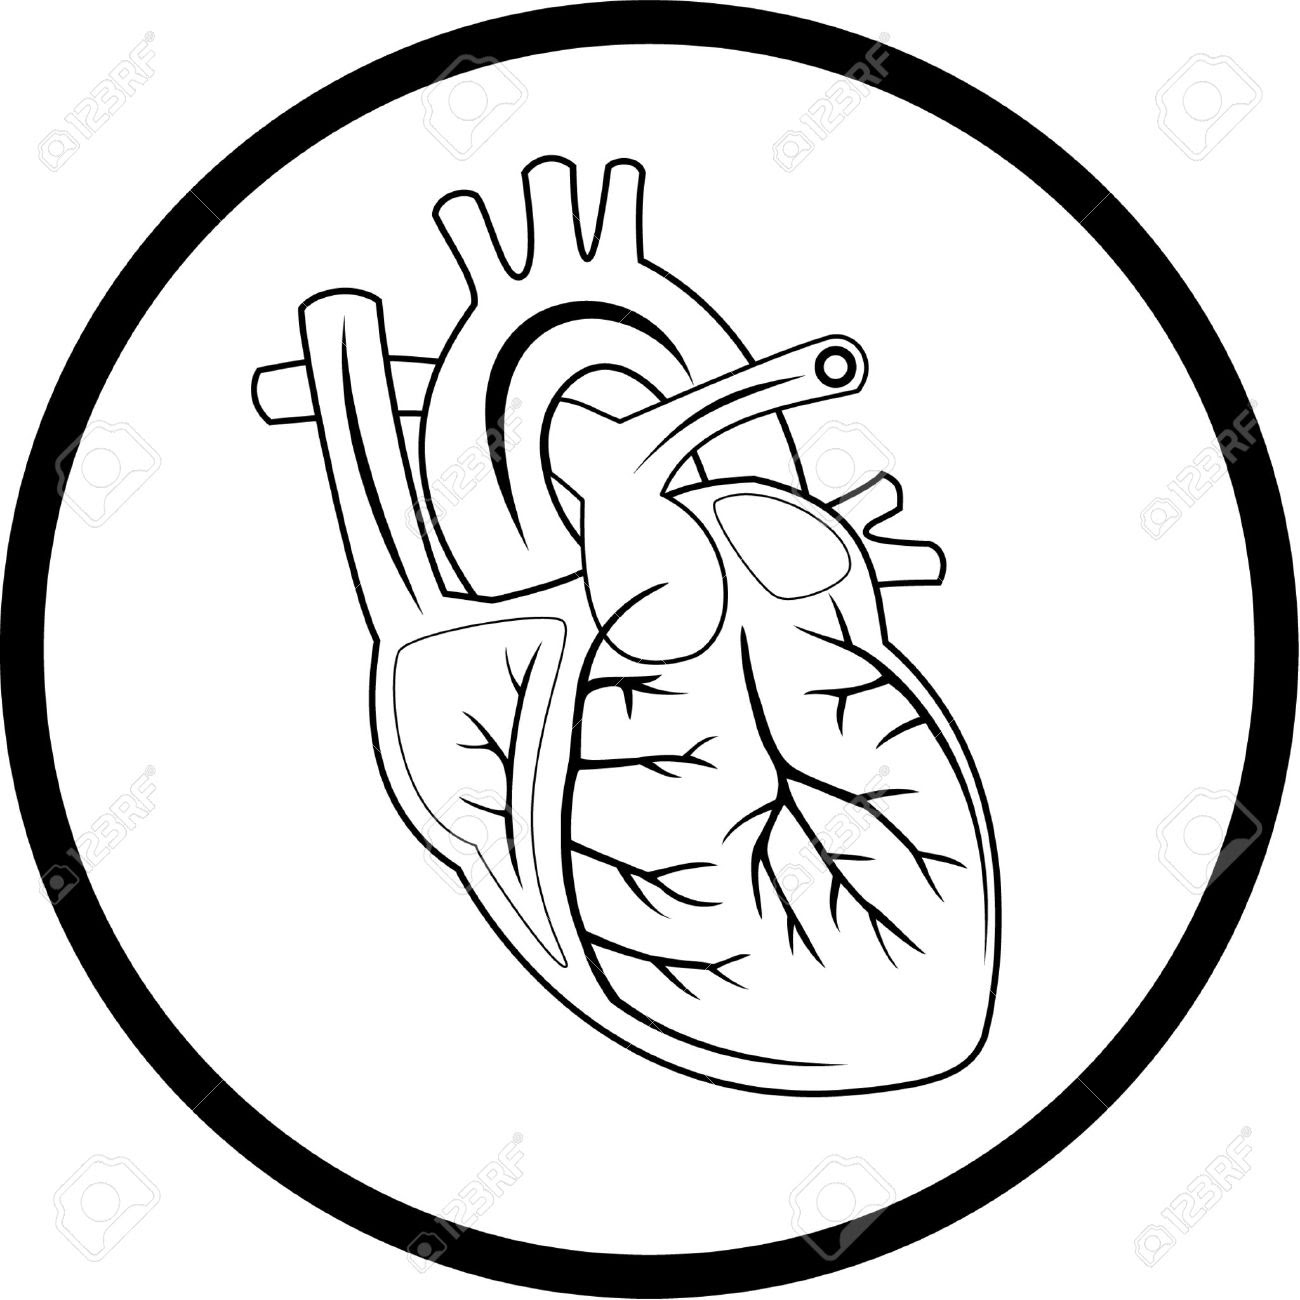 human heart clipart black and white 37